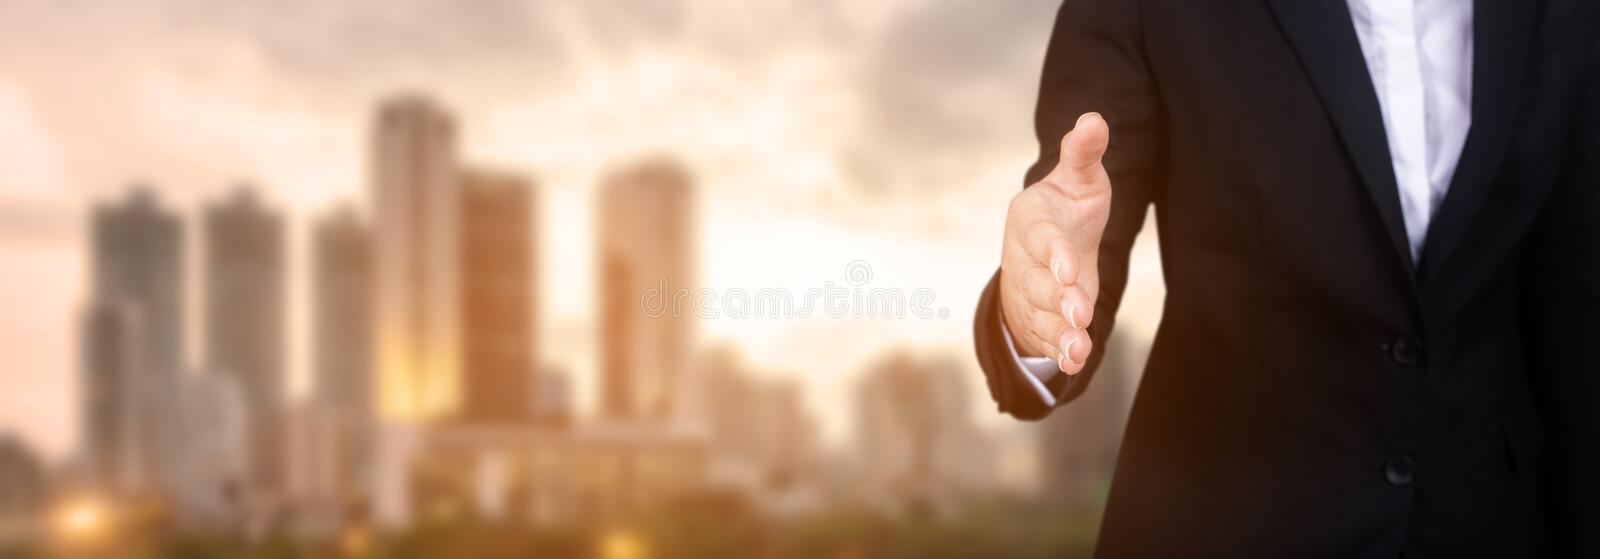 Businesswoman open hand ready to seal a deal, partner shaking ha stock photo